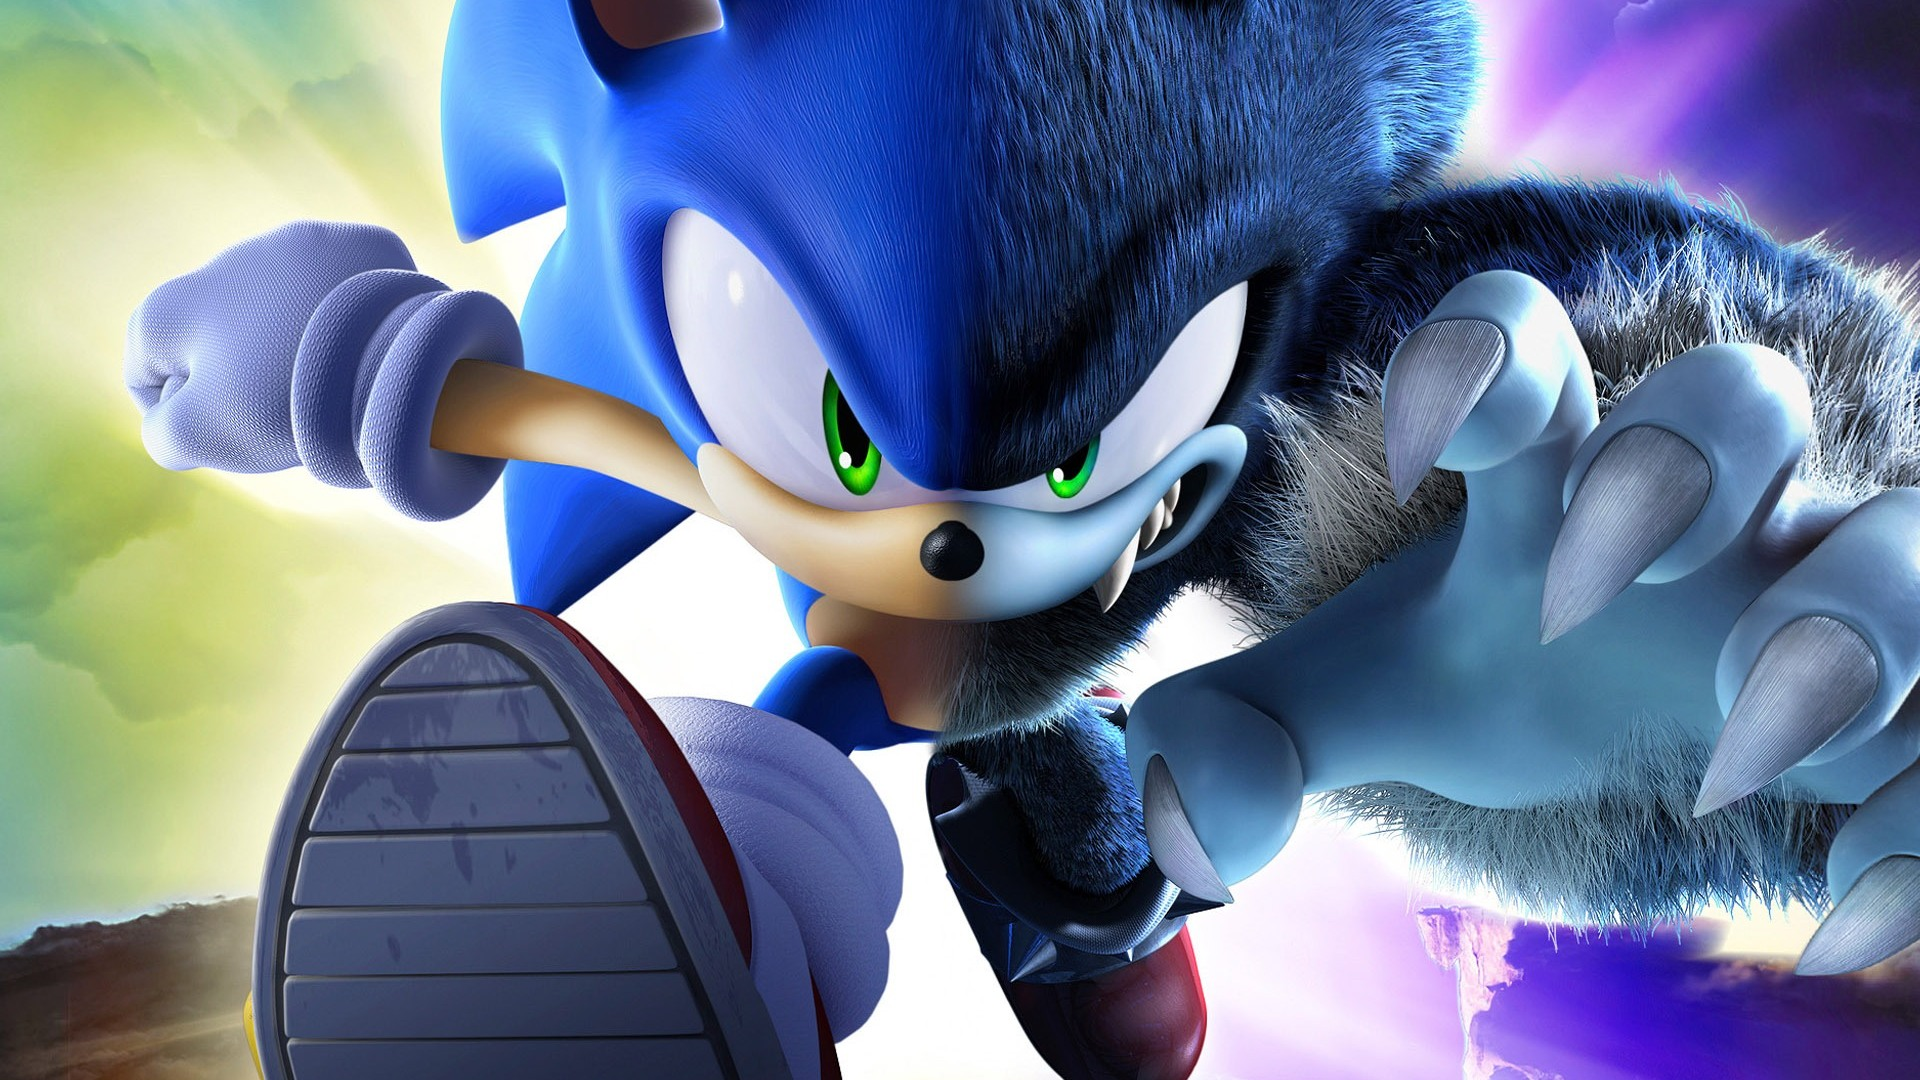 sonic-games-rare-com-re-1920%C3%971080-wallpaper-wp36010675